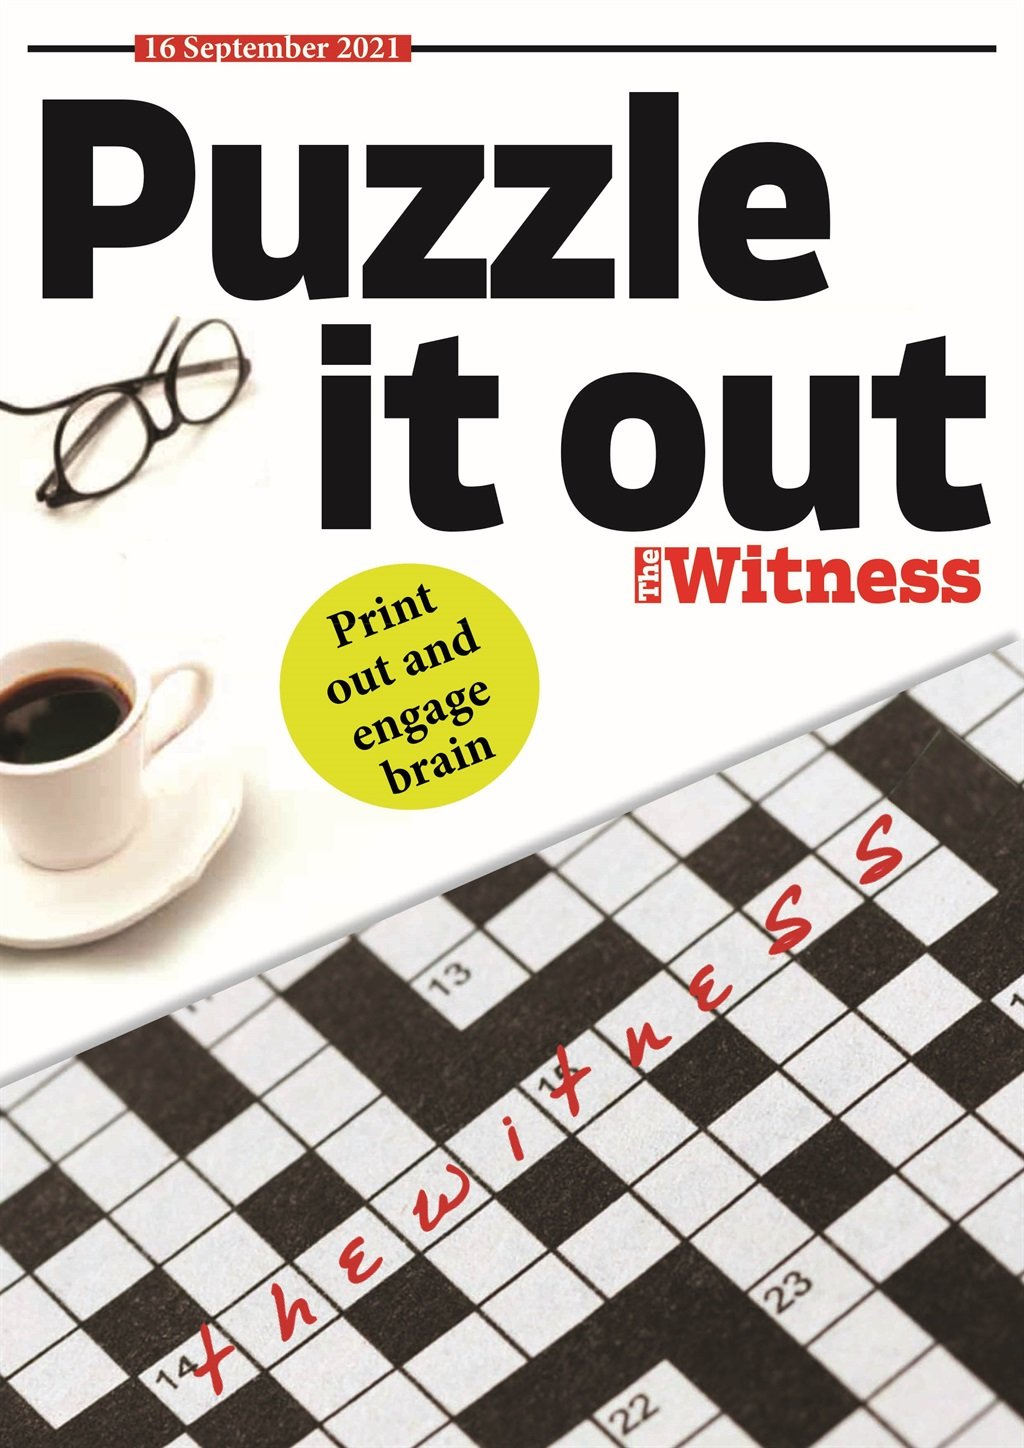 Puzzles, September 16, 2021.